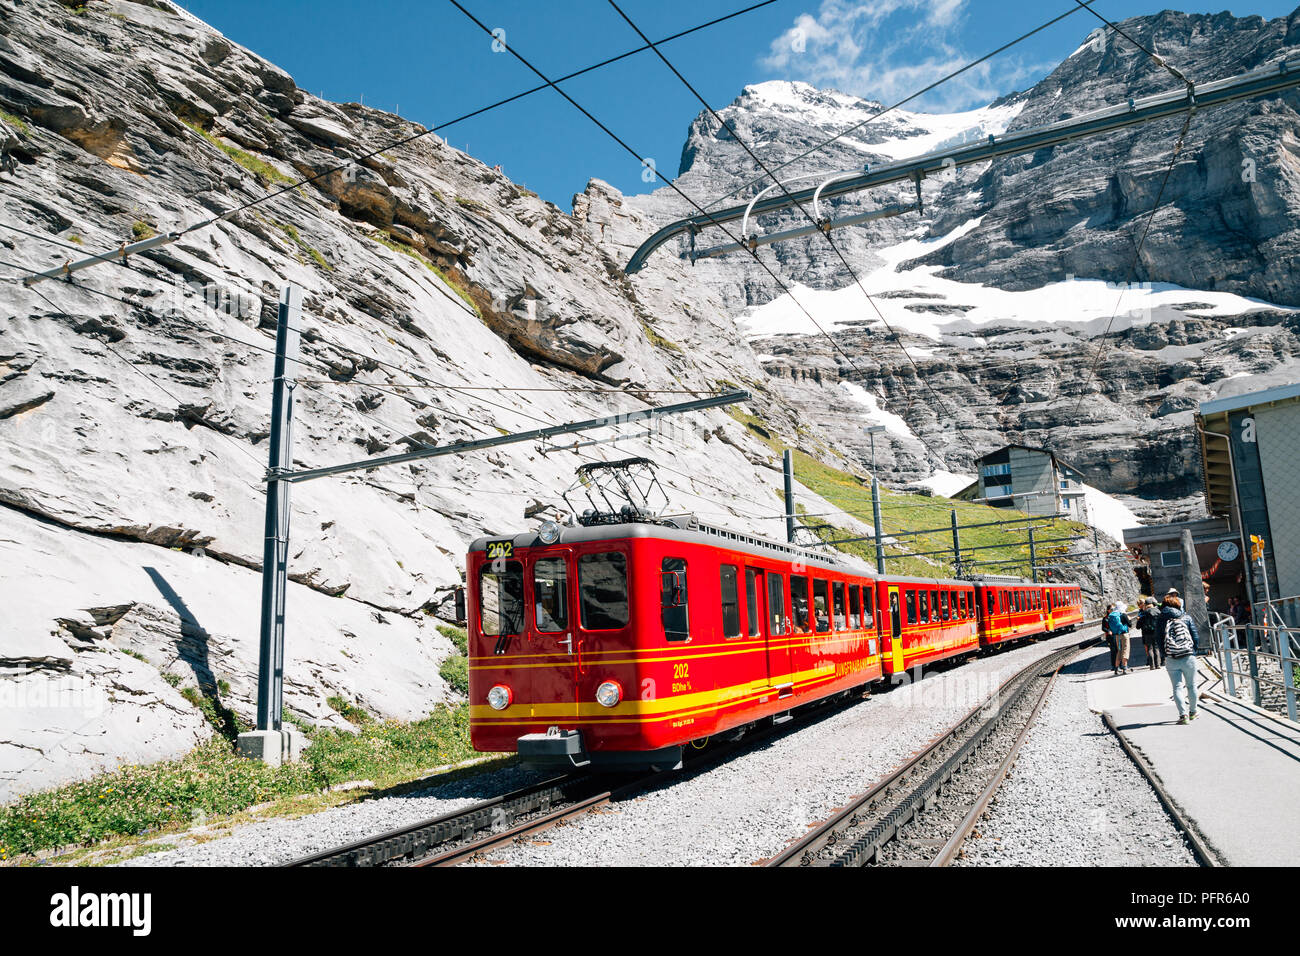 Switzerland - August 22, 2016 : Eigergletscher train station platform with snowy mountain - Stock Image